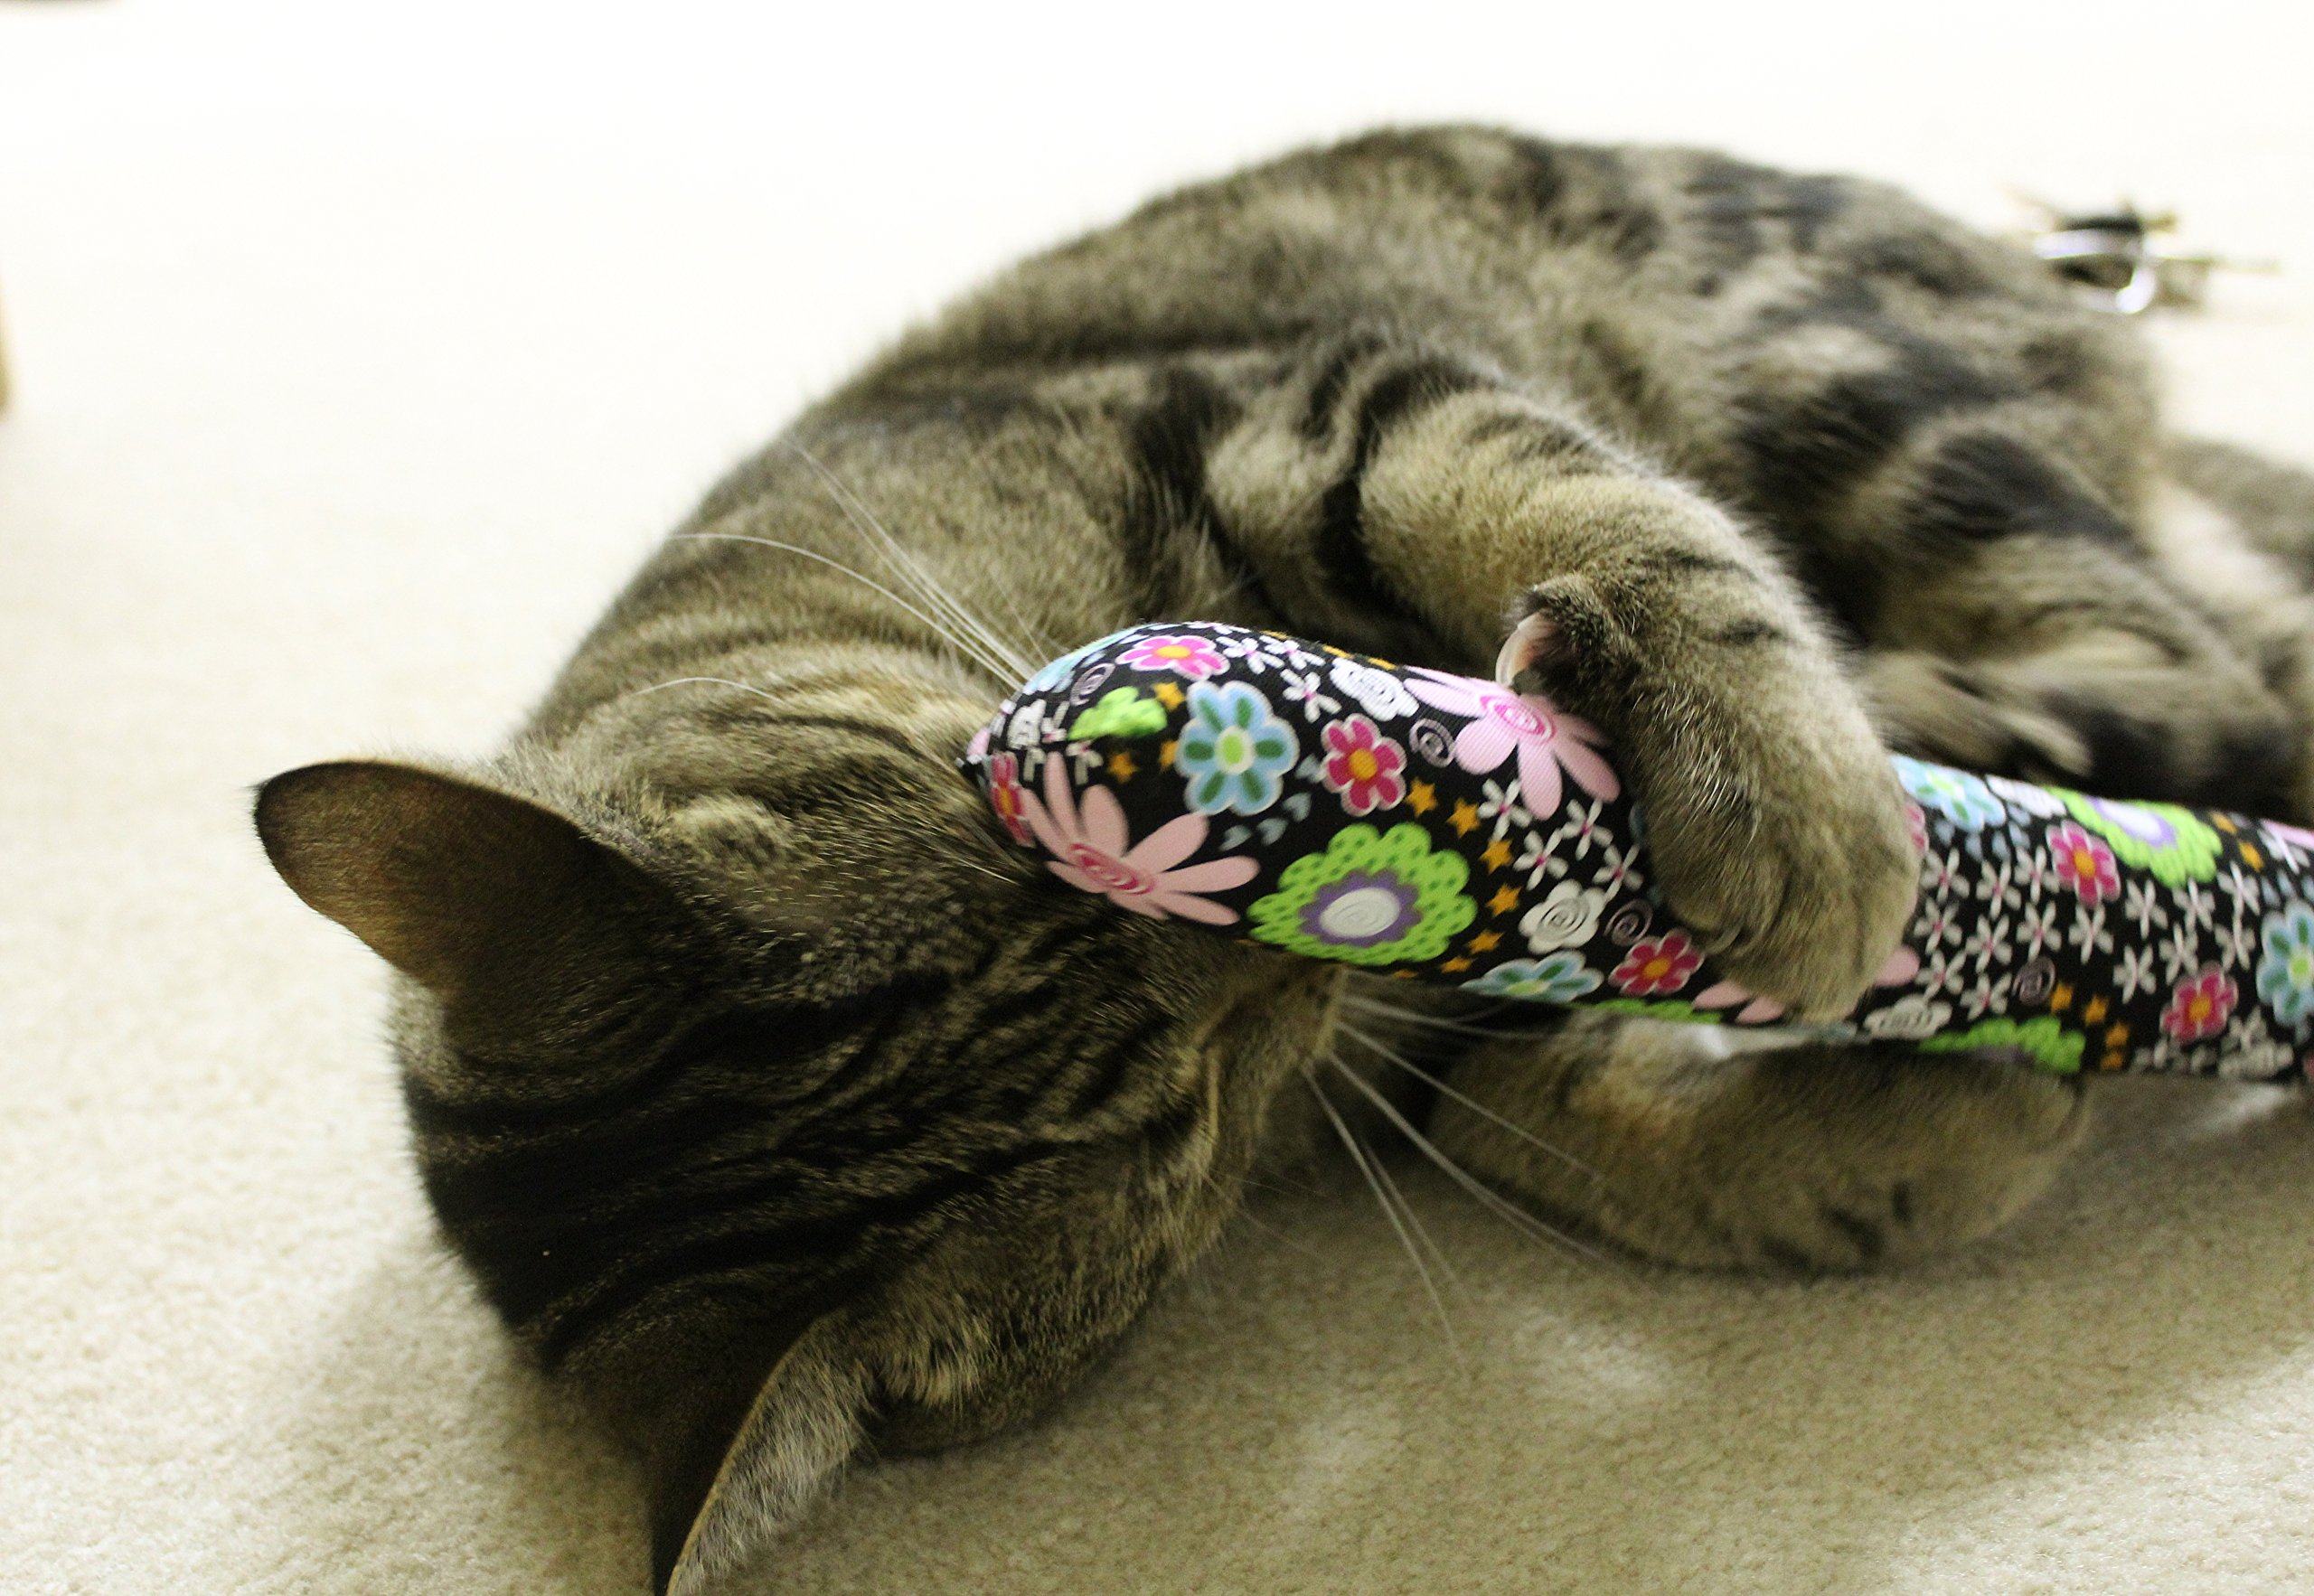 11'' Kitty Stick Catnip Cat Toy (Pack of 4), Assorted Colors & Patterns by Kitty Kandy (Image #2)